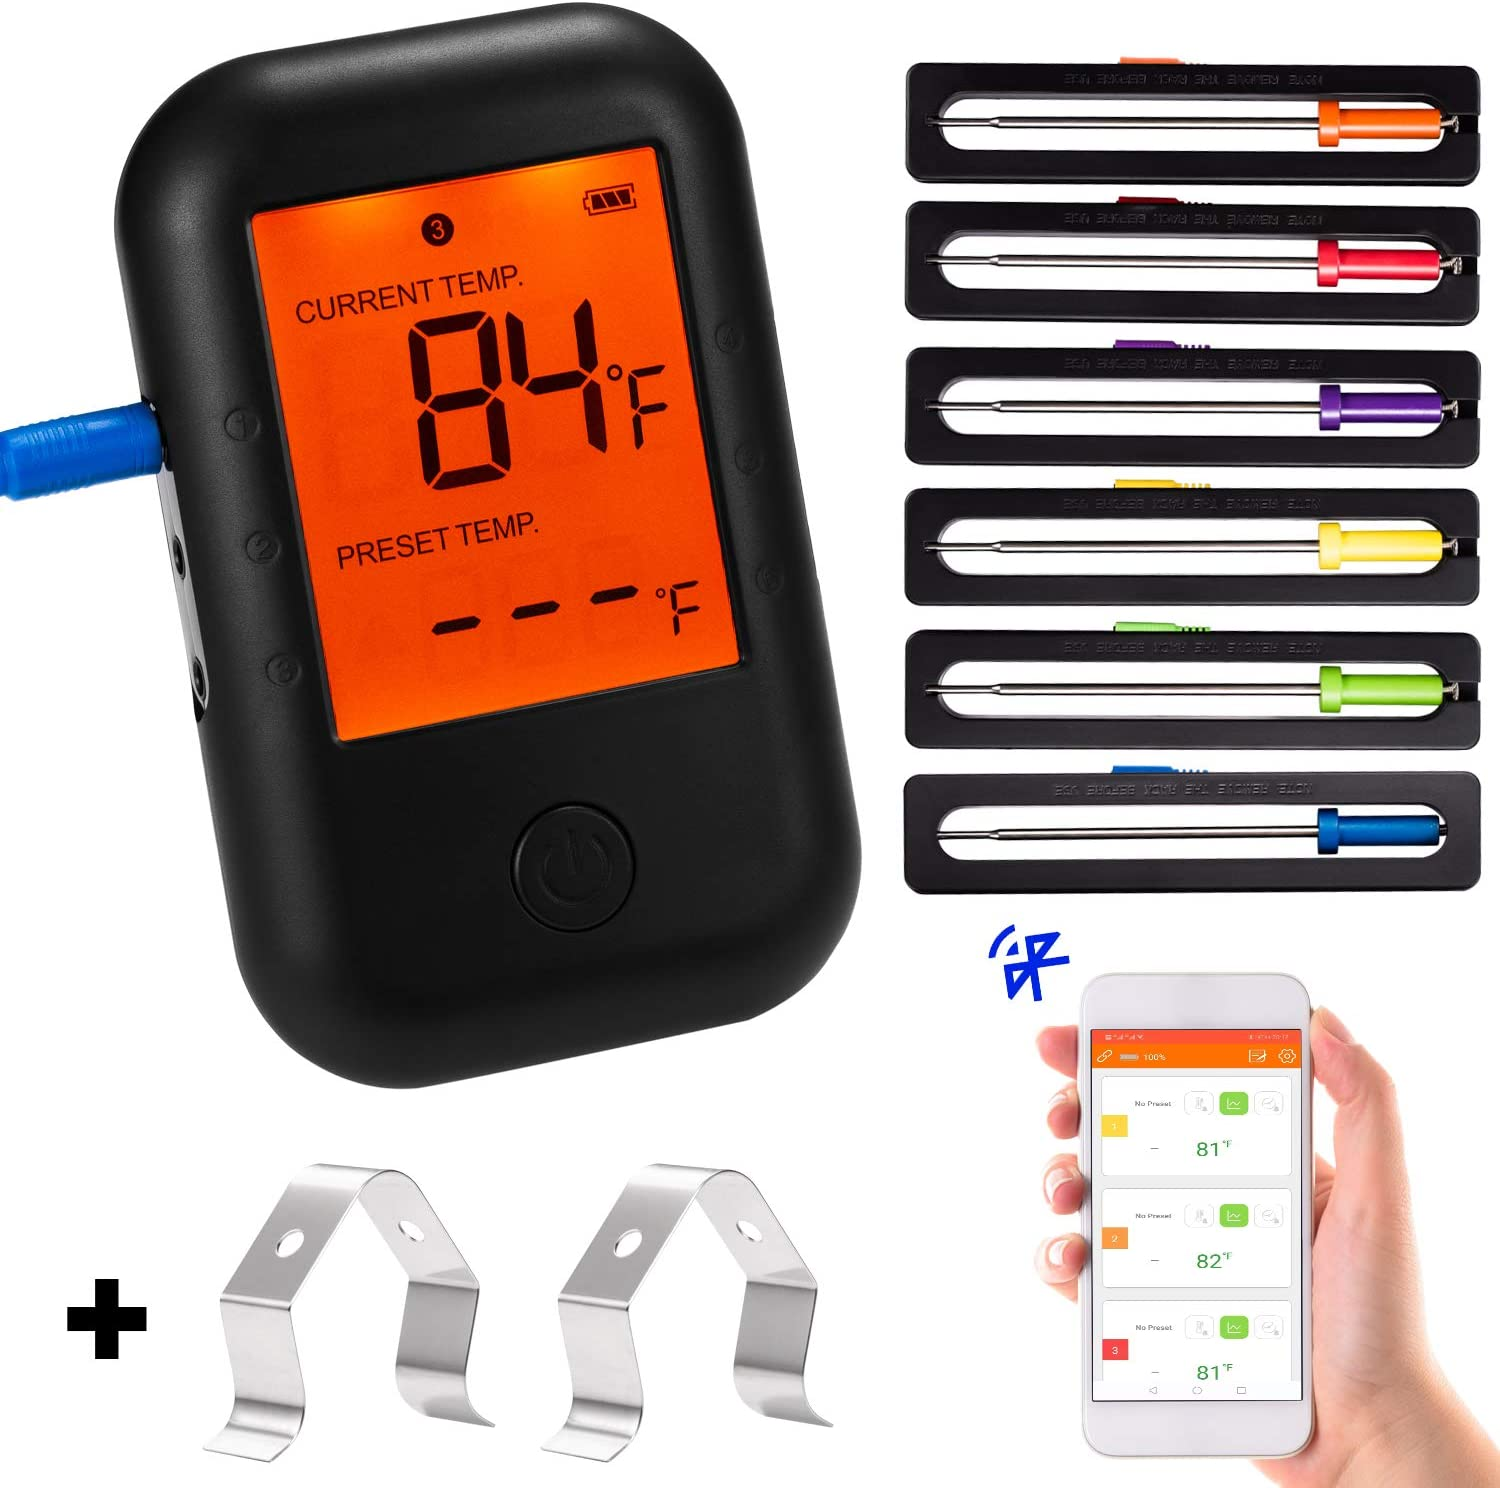 Deeteck Digital Meat Thermometer for food with 6 Stainless Steel Probes & Accurate Instant Reading,Oven Grilling Thermometers,Bluetooth Smoker Thermometer for Cooking,BBQ,Kitchen